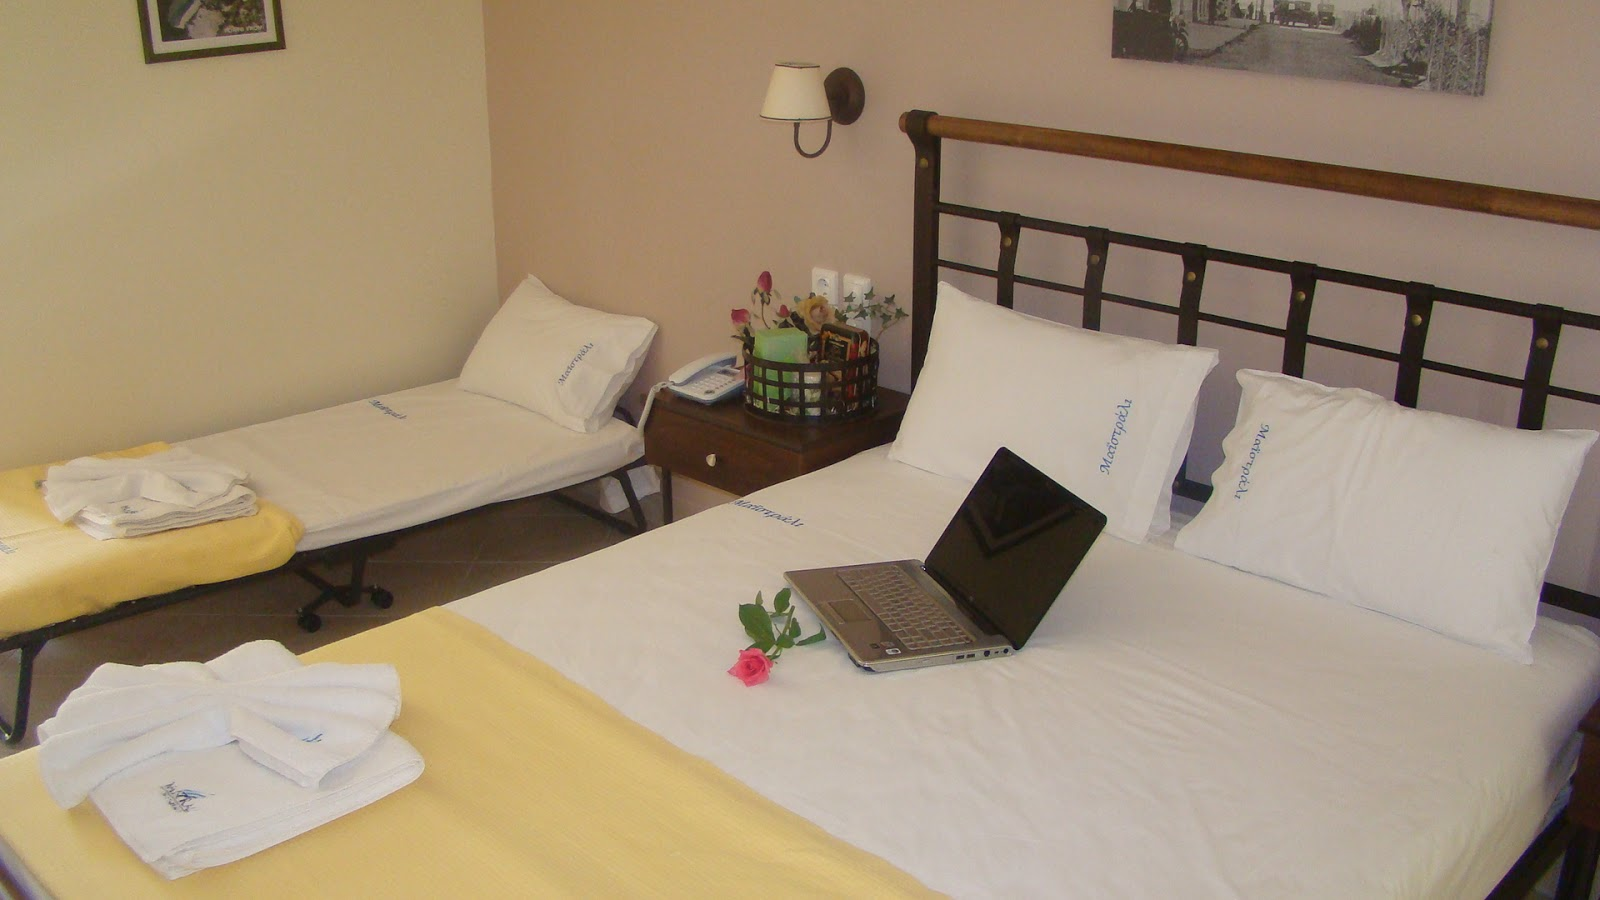 housekeeping  sop hotel hk extra bed and sofa cum bed making